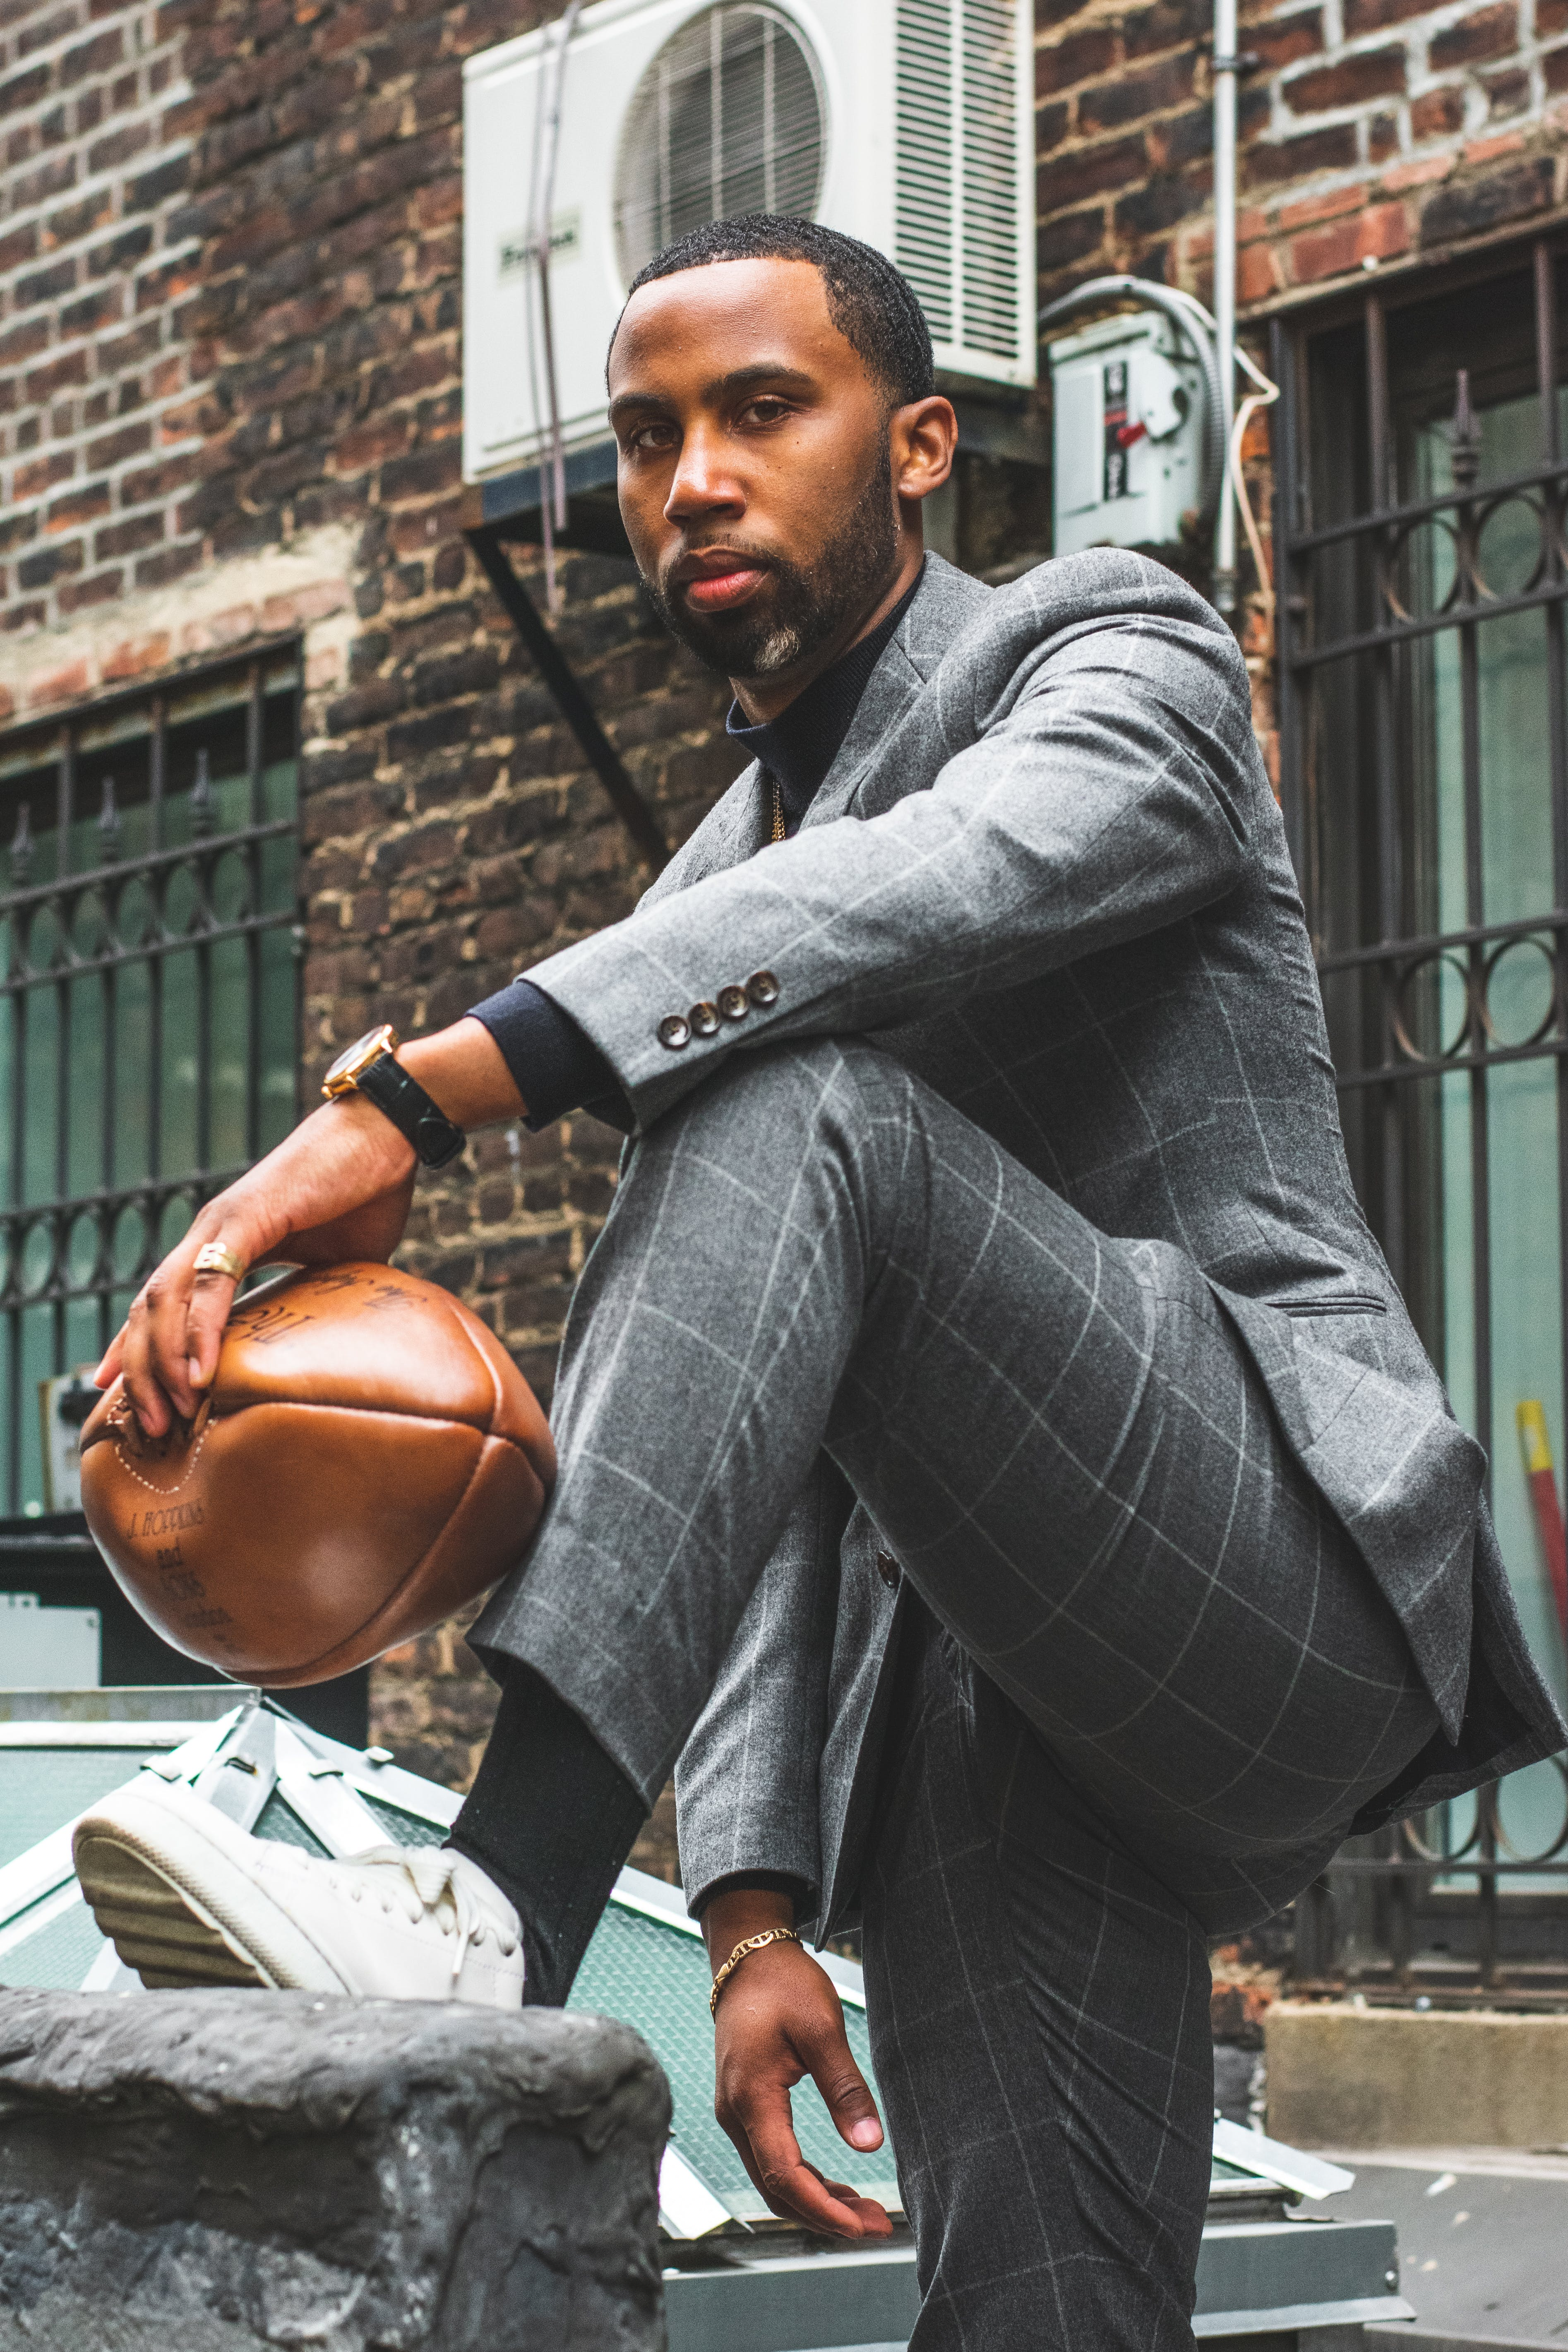 Photo of Man in Formal Wear Holding Football